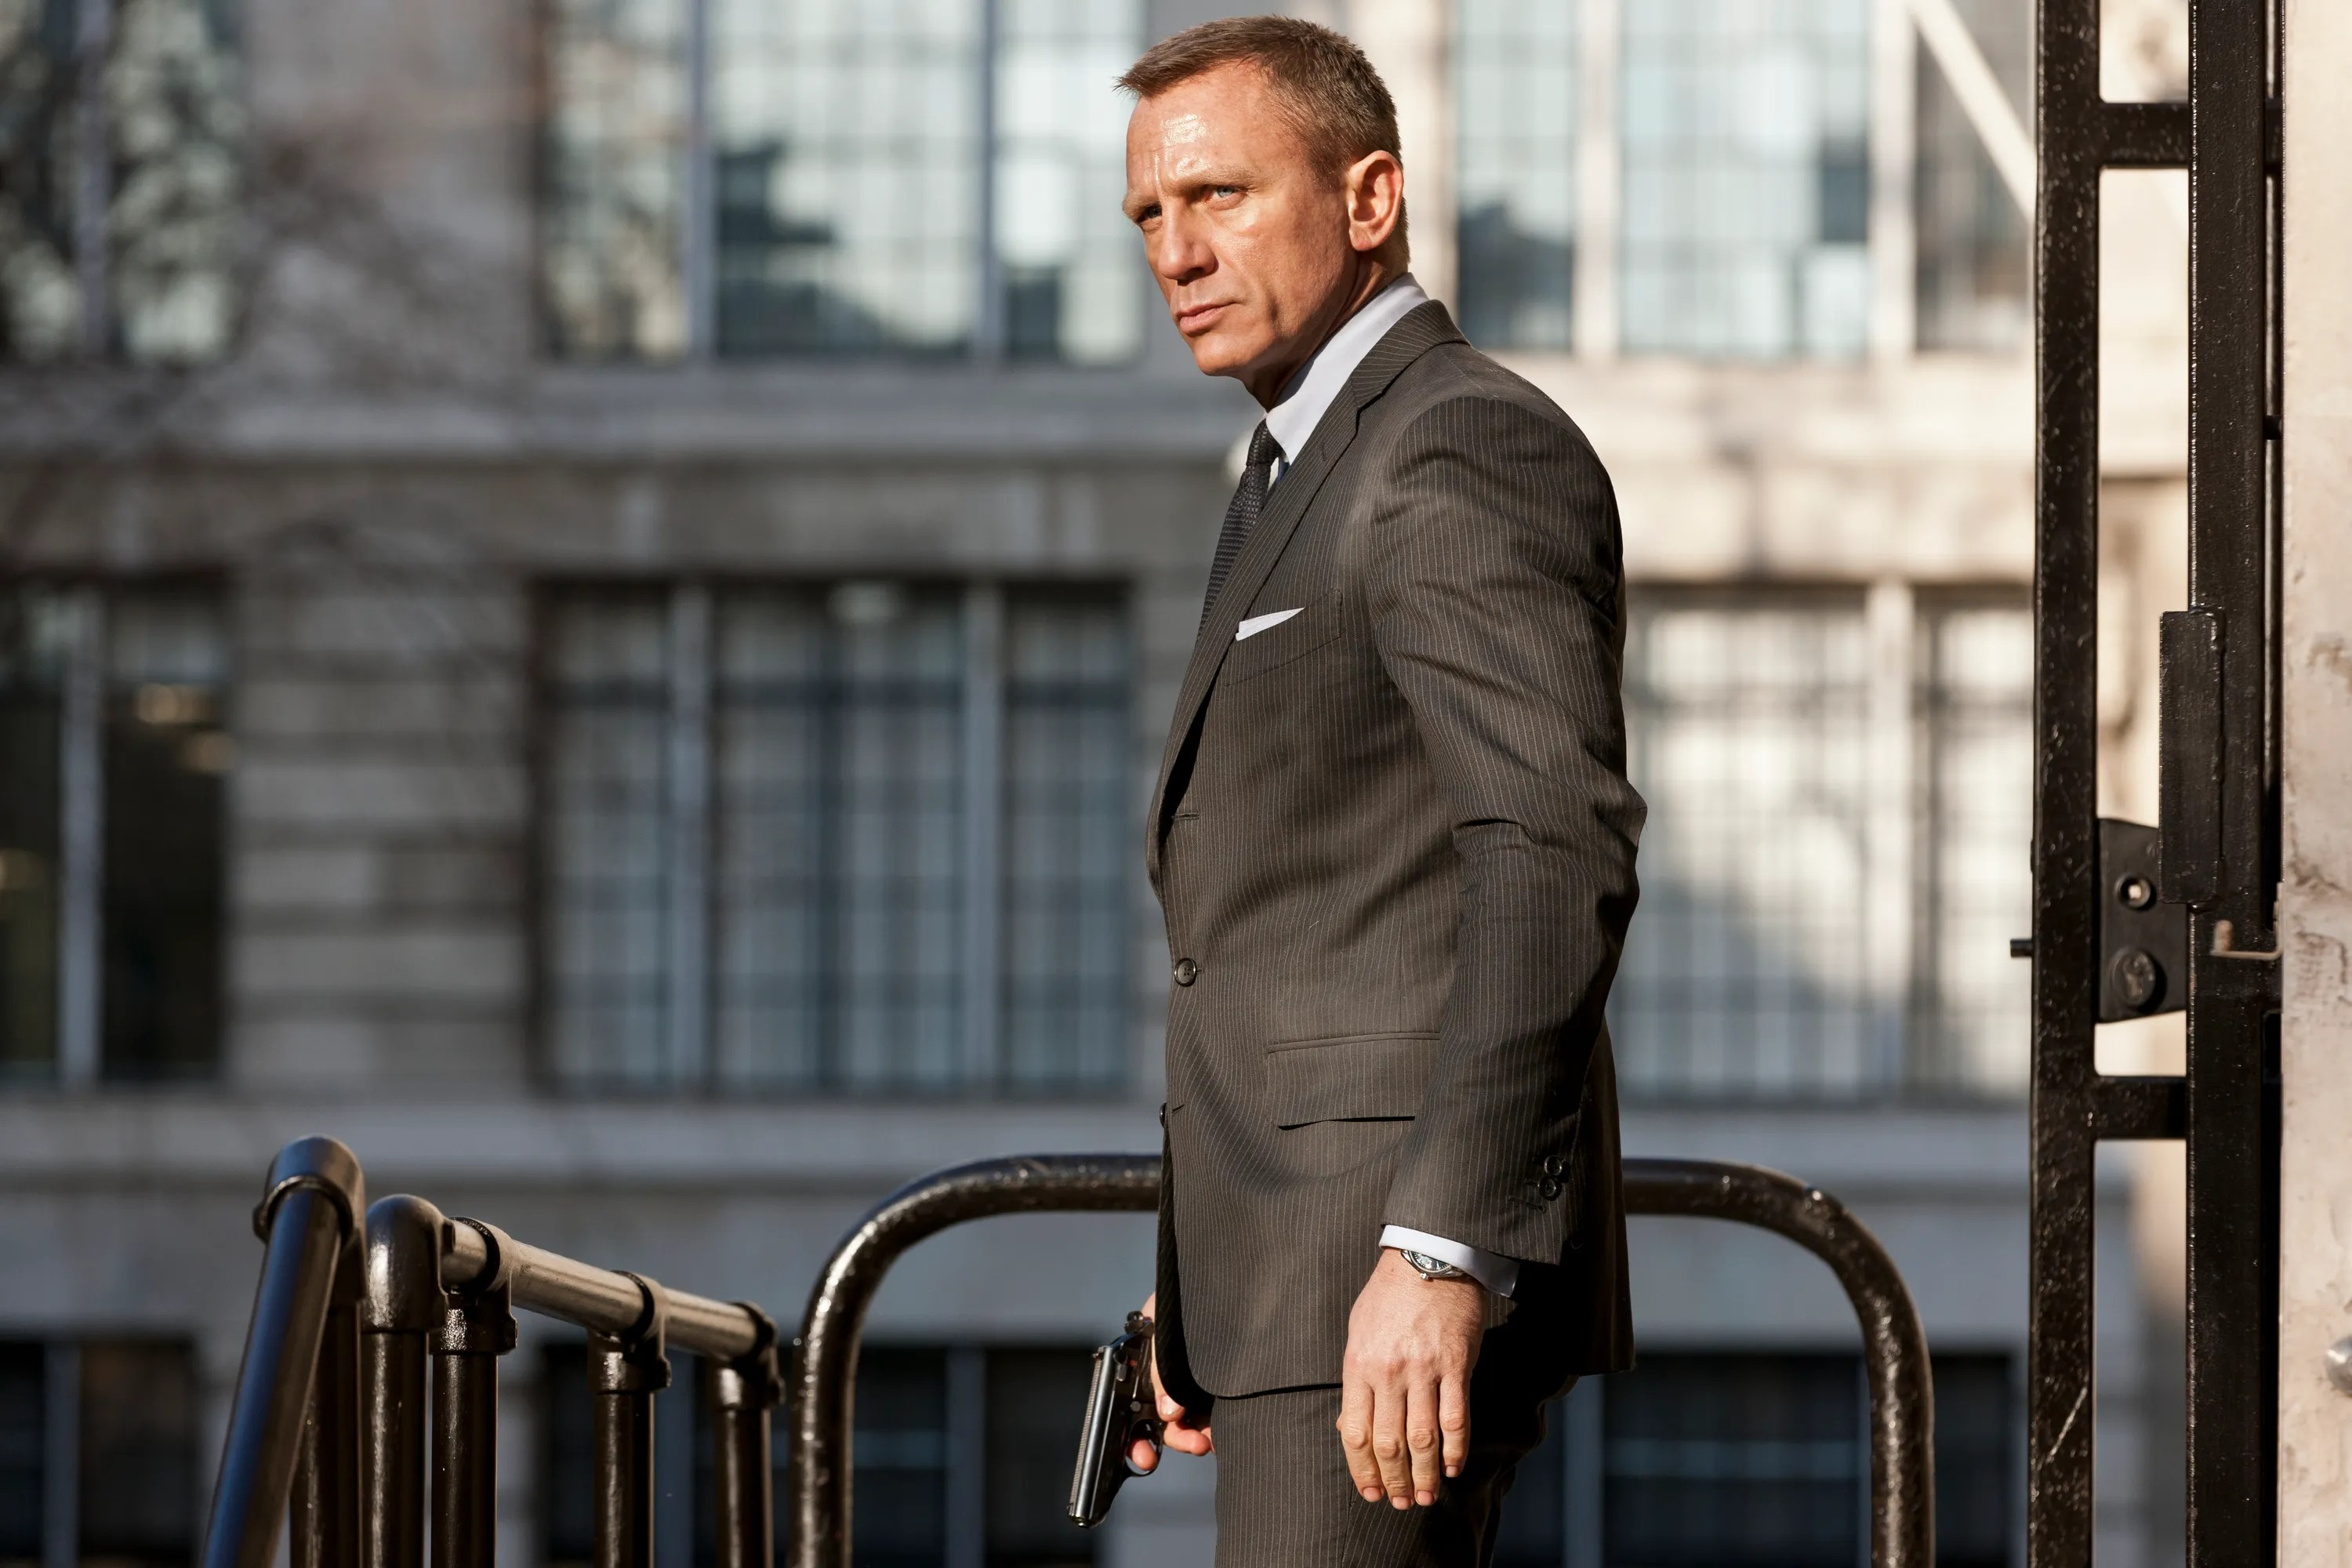 Spotting Couture Fashion Designers in Your Favorite Movies   WIRED Daniel Craig stars as James Bond in Metro Goldwyn Mayer Pictures Columbia  Pictures EON Productions  action adventure Skyfall  Photo by  Francois  Duhamel